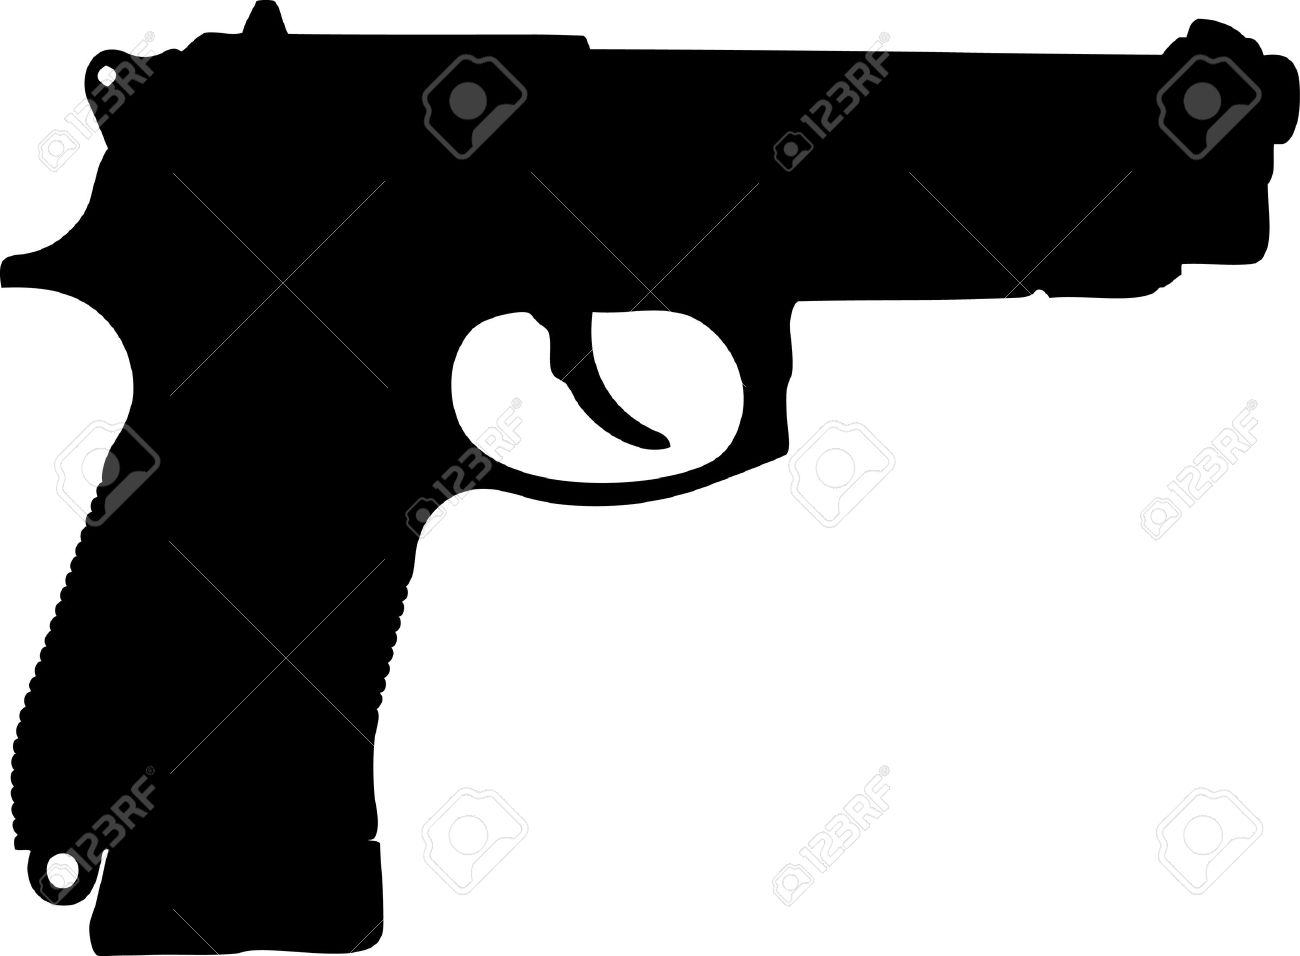 silhouette of pistol on a white background Stock Vector - 9163637